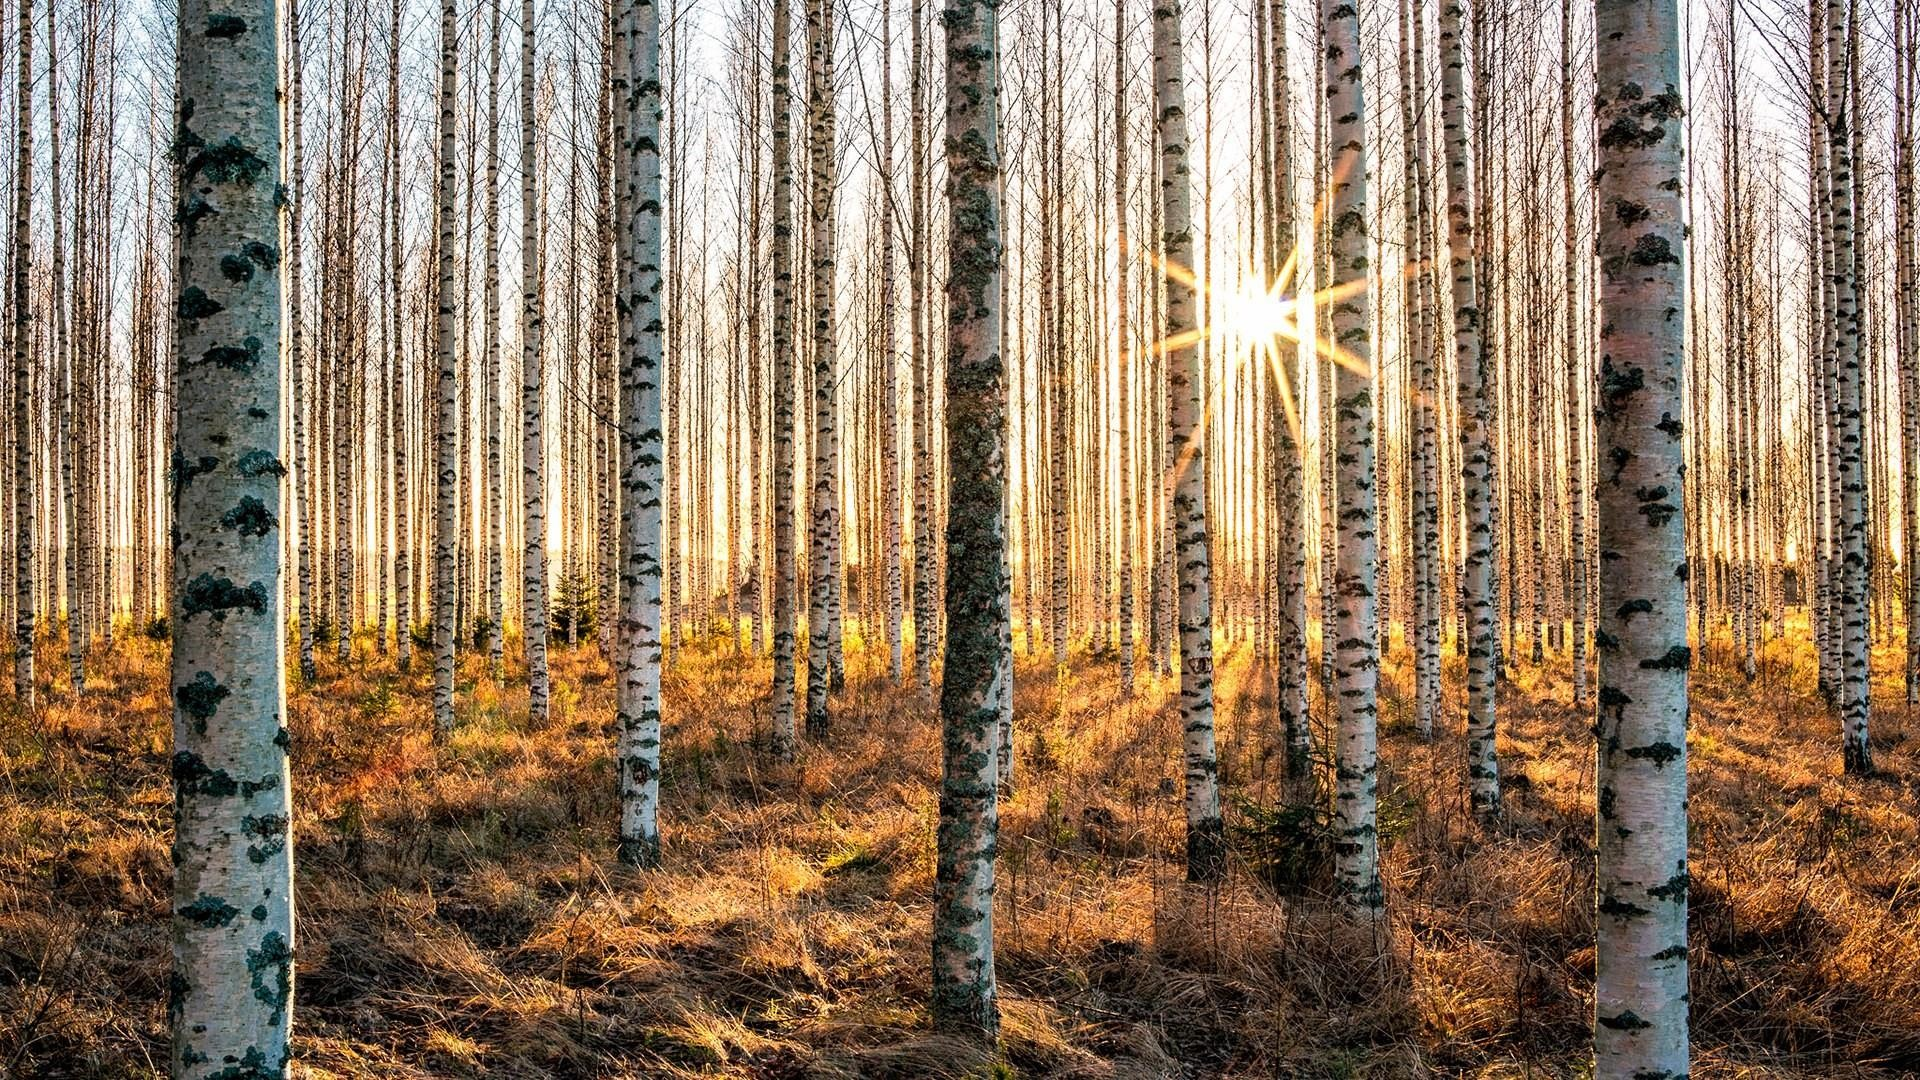 Res: 1920x1080, Silver Birch Forest Wallpaper | Wallpaper Studio 10 | Tens of thousands HD  and UltraHD wallpapers for Android, Windows and Xbox